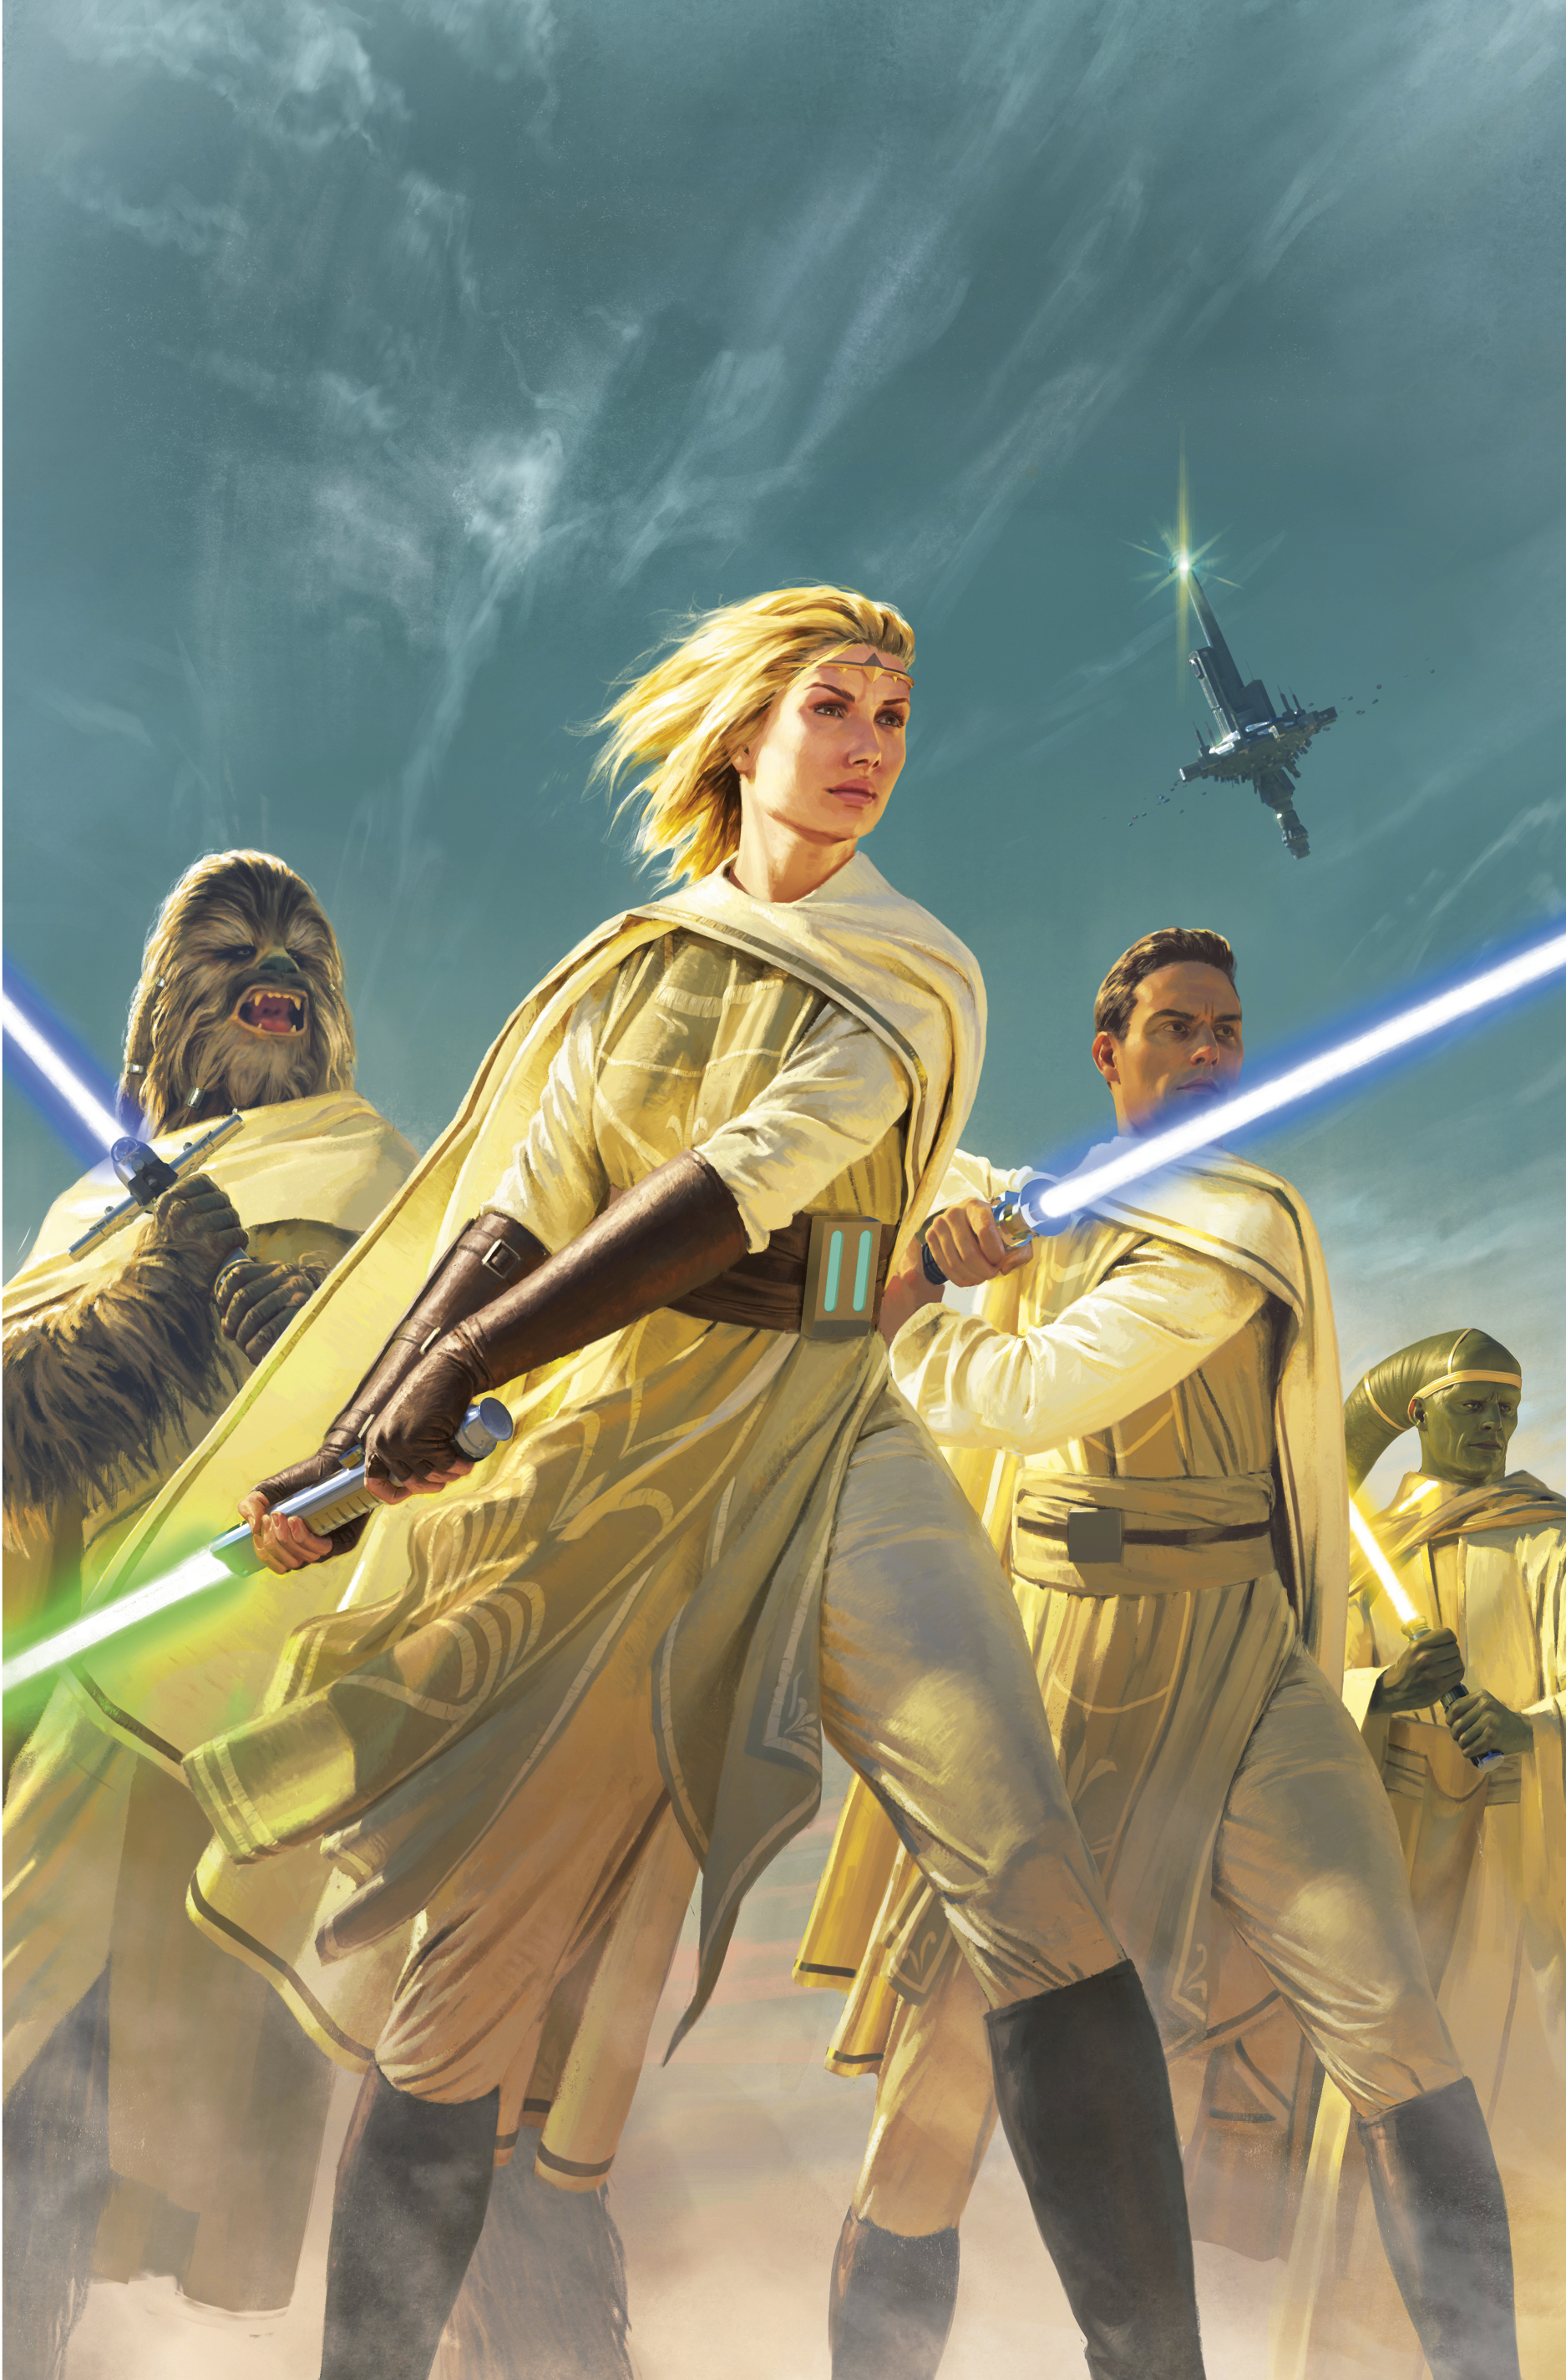 Light of the Jedi cover featuring Avar Kriss with green lightsaber